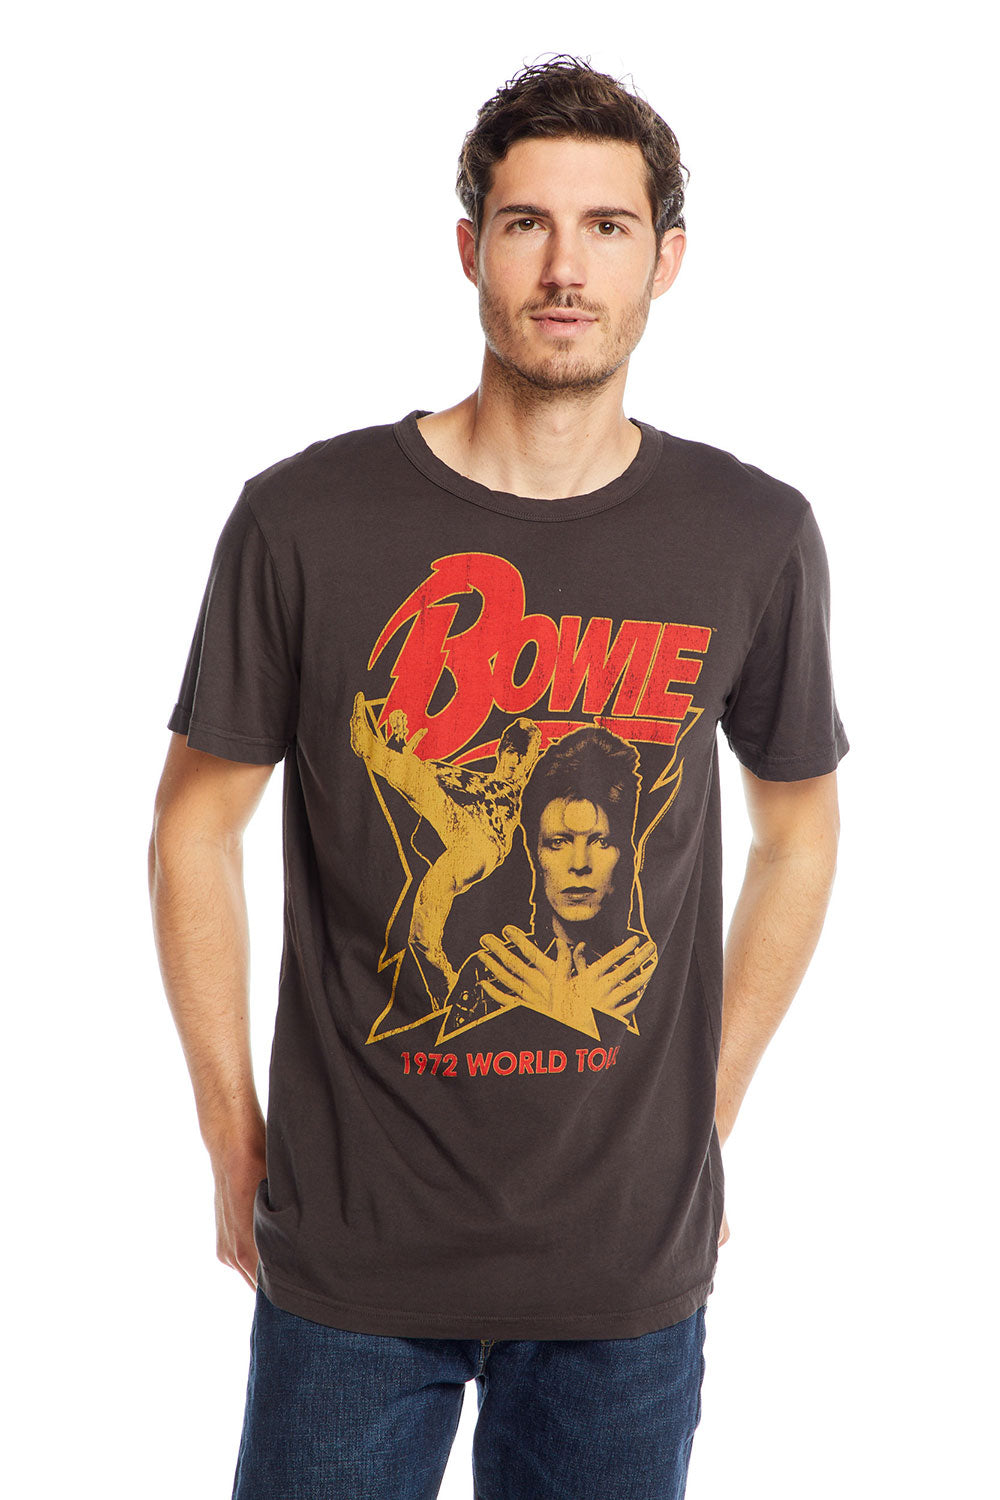 David Bowie - World Tour MENS chaserbrand4.myshopify.com